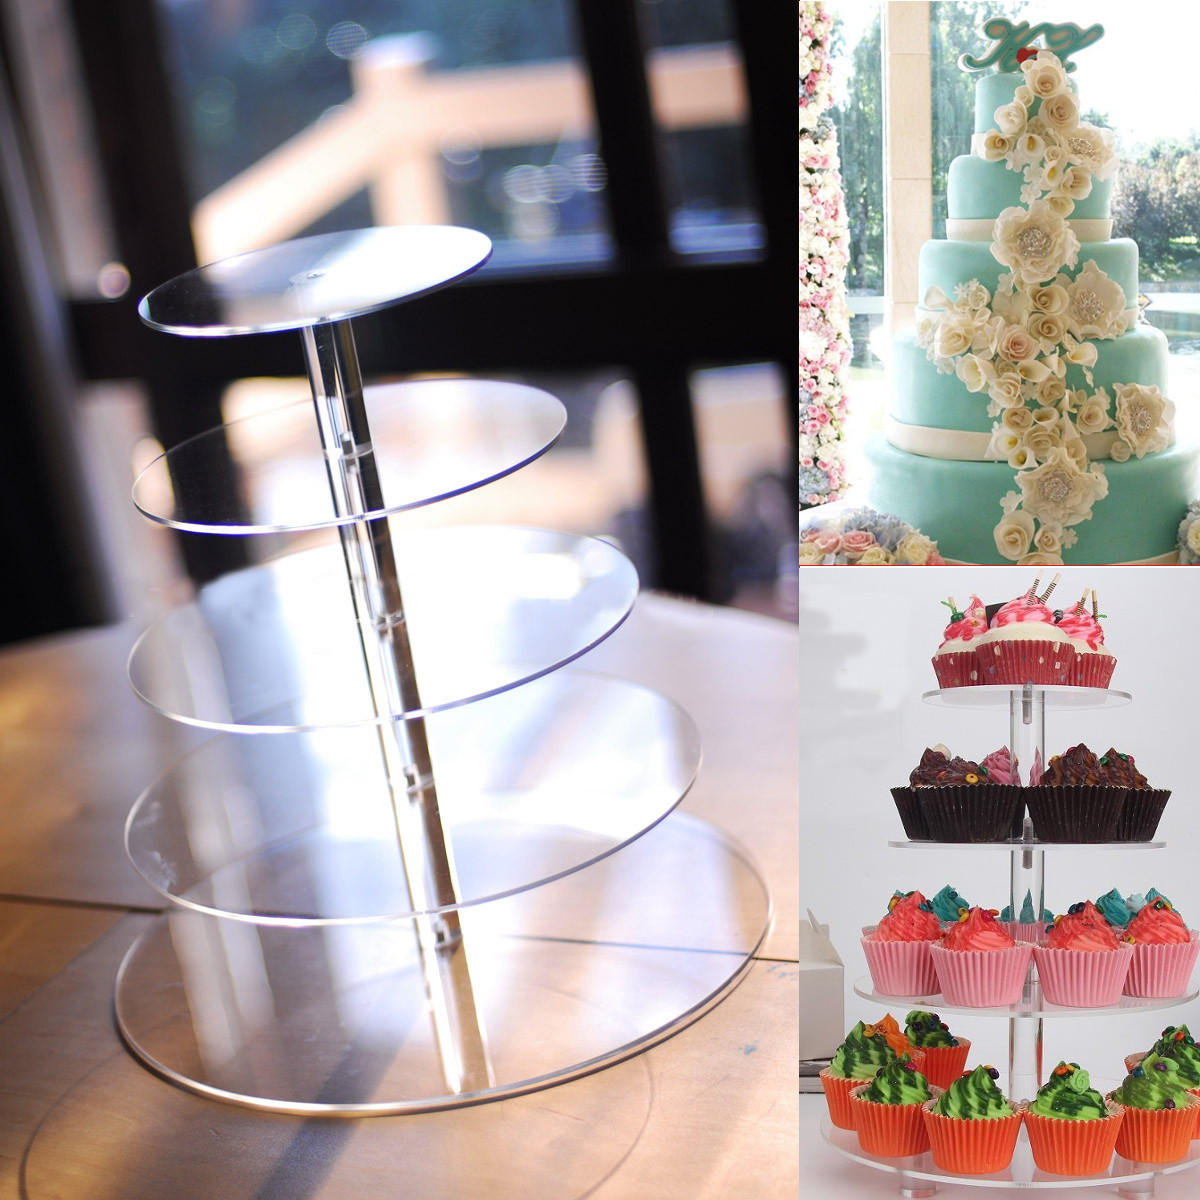 5 Tier Acrylic Cupcake Cake Stand Party Wedding Birthday Tower Display Holder Decorations COD